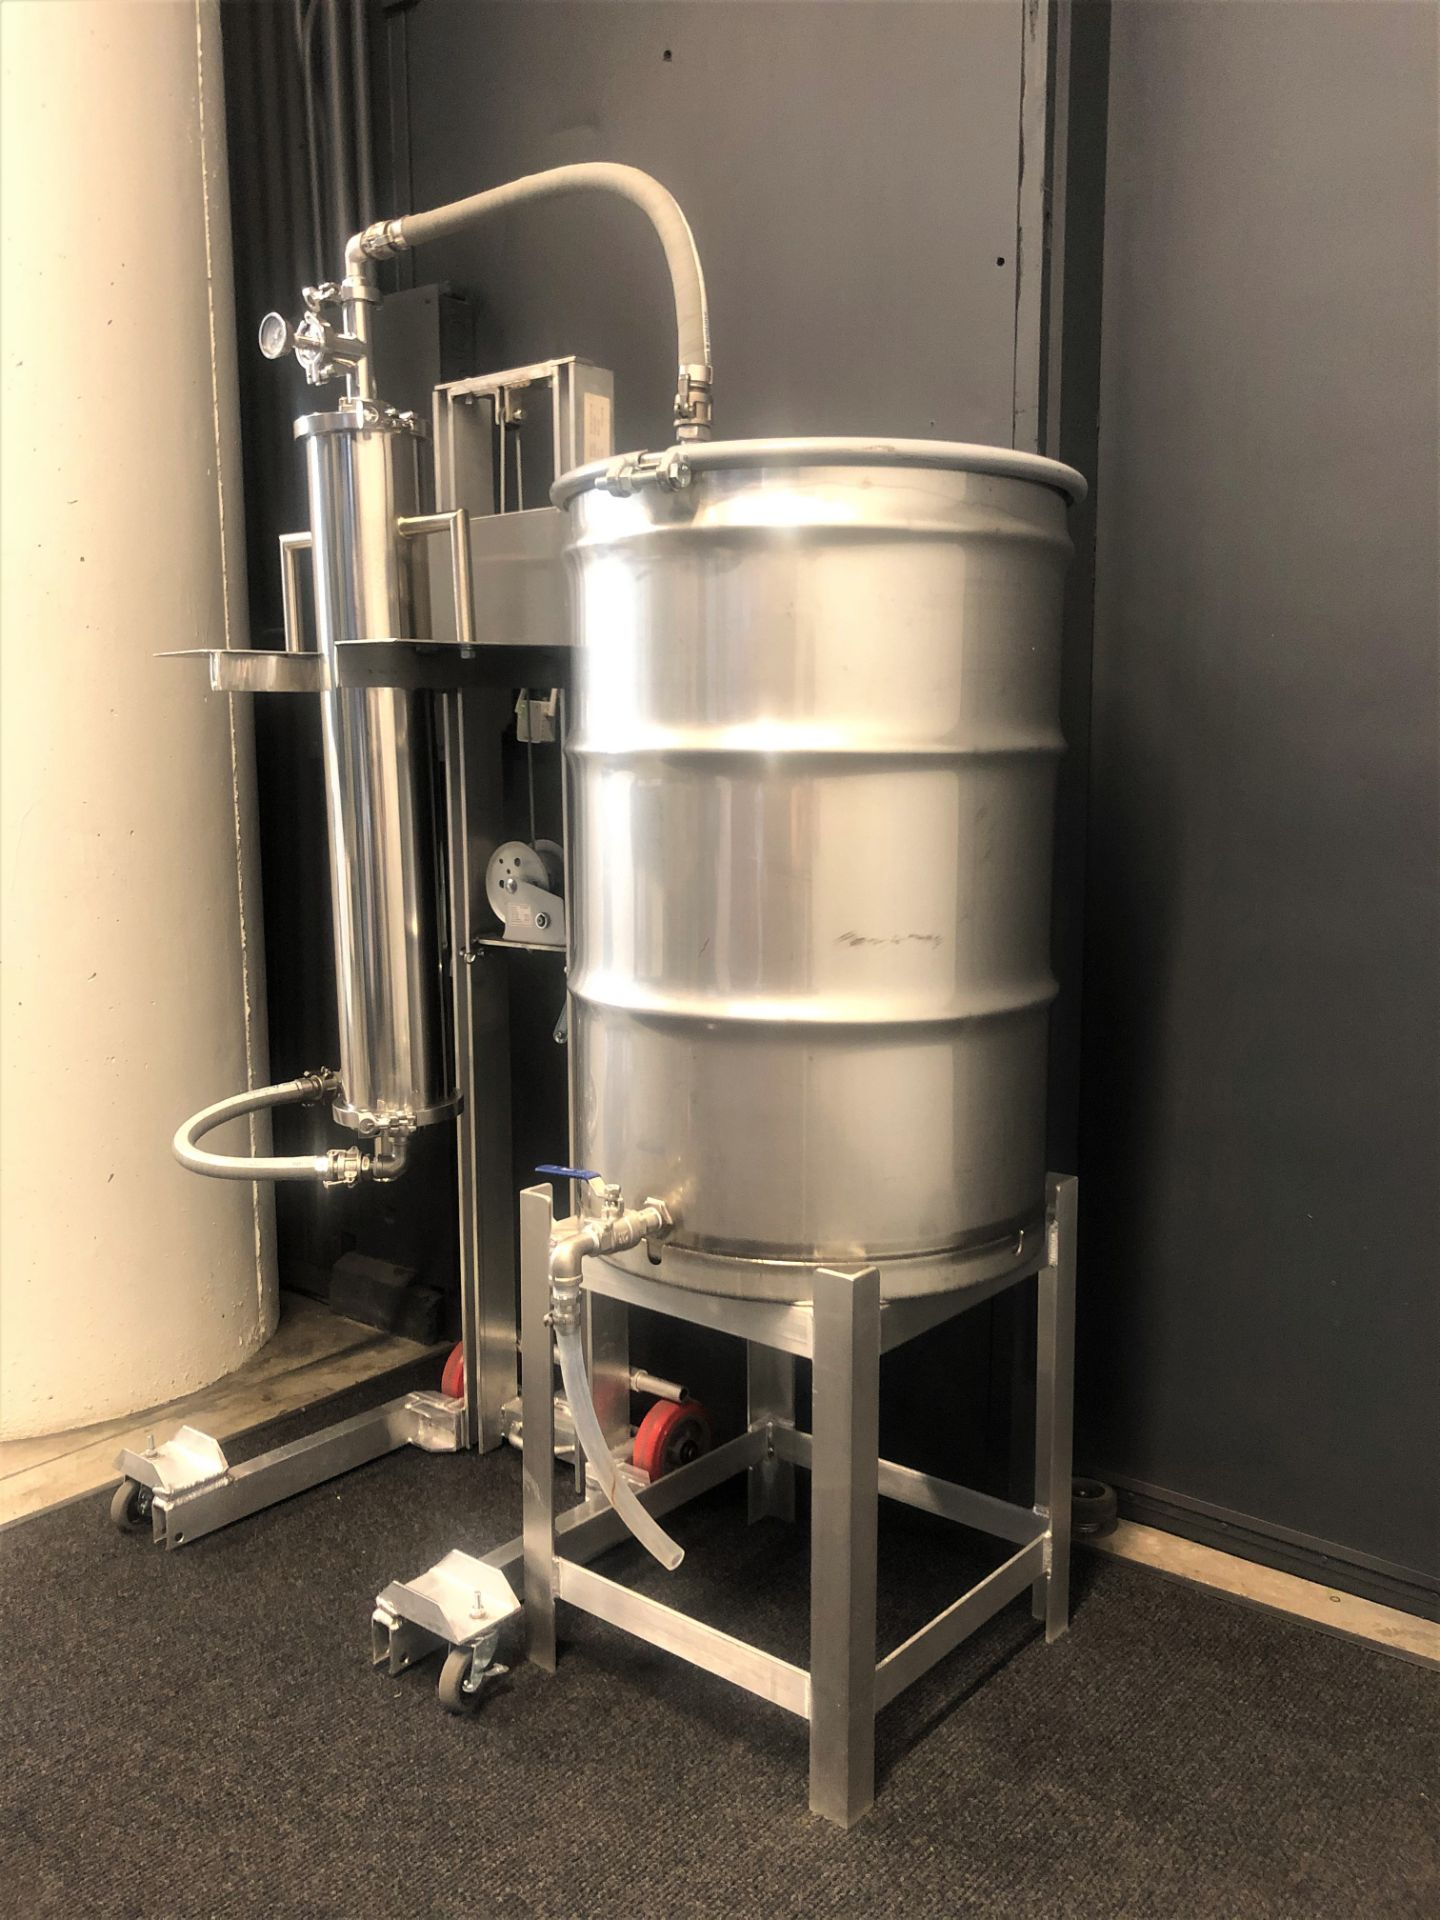 Used/Refurbished-CRCfilters Ethanol Dehydration System EDH-25. 25lb capacity 55 gal collection drum. - Image 3 of 7